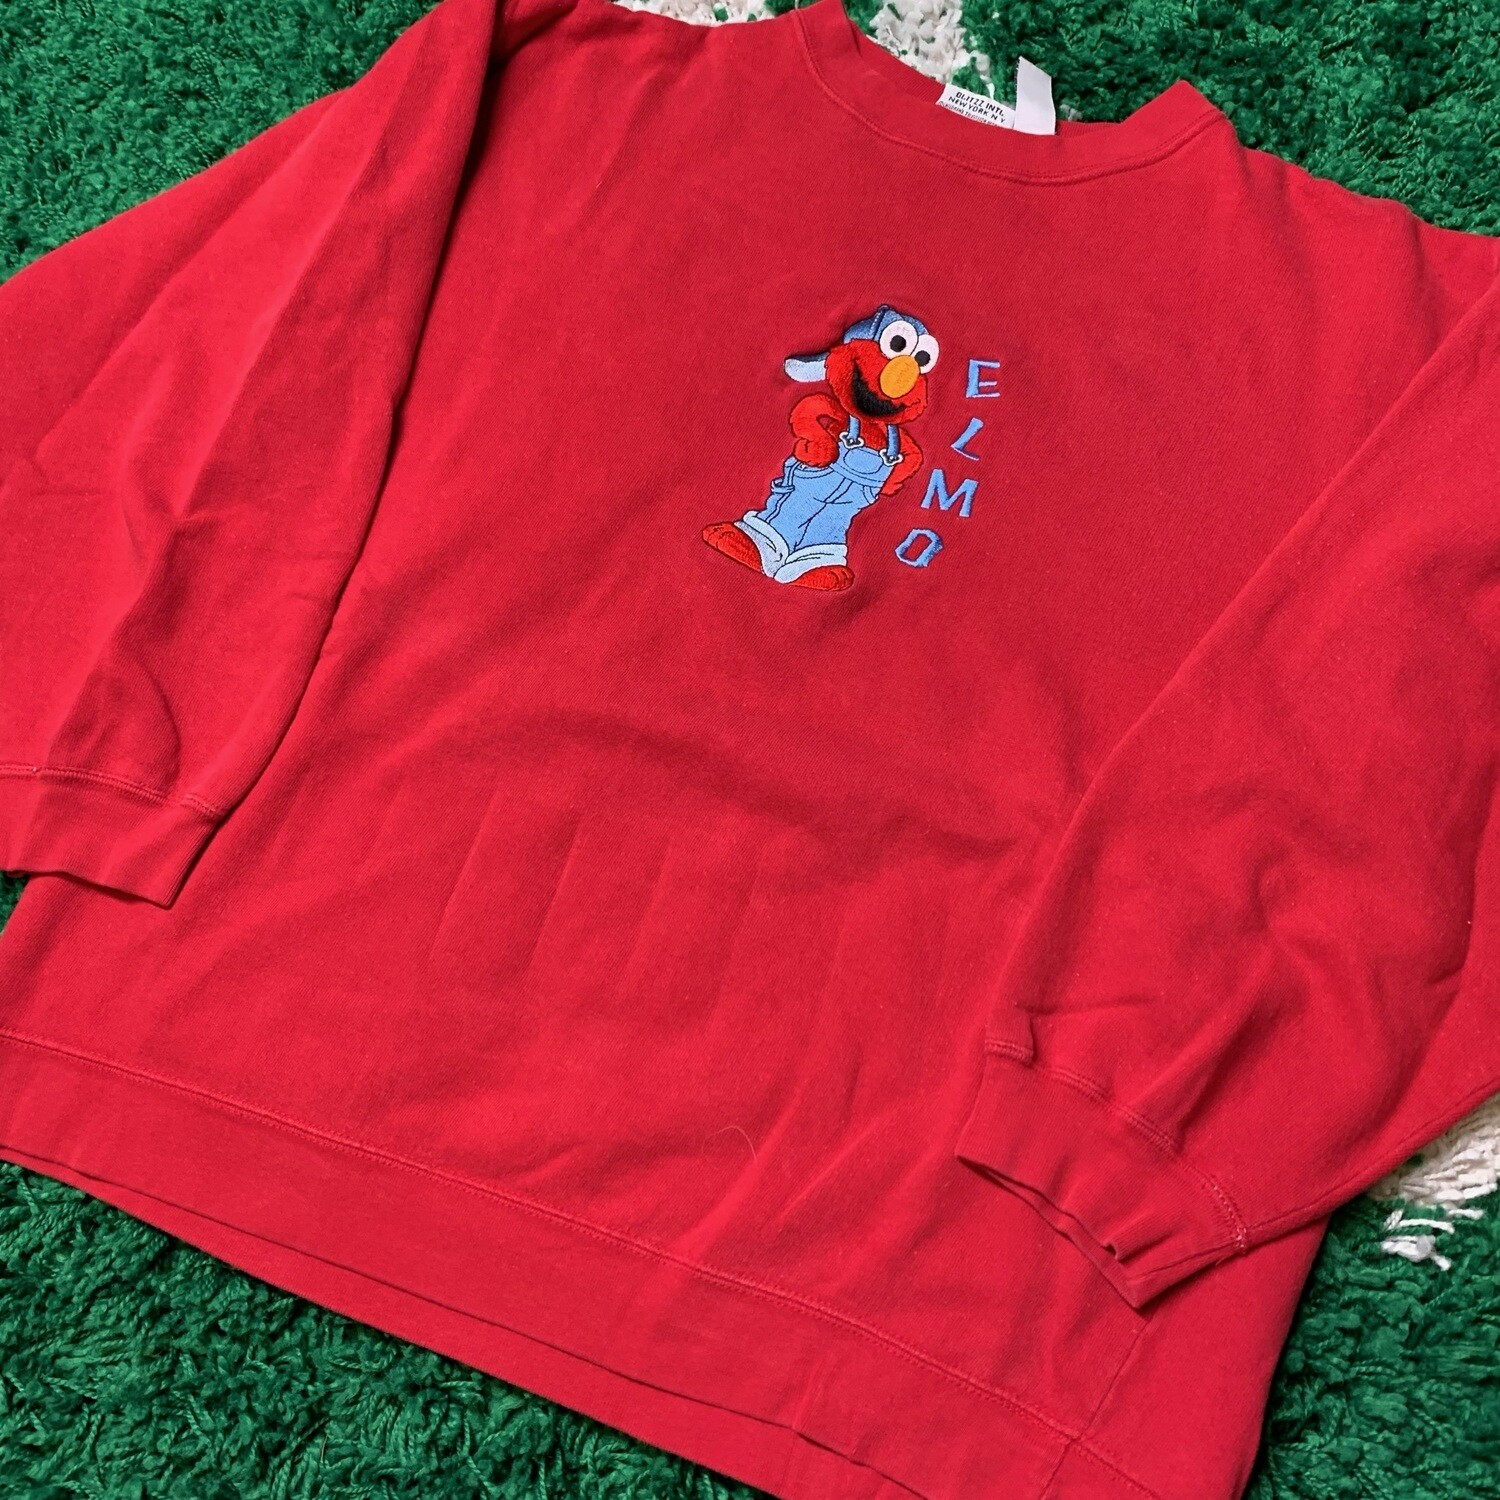 Elmo Stitched Sweater Red Size Large